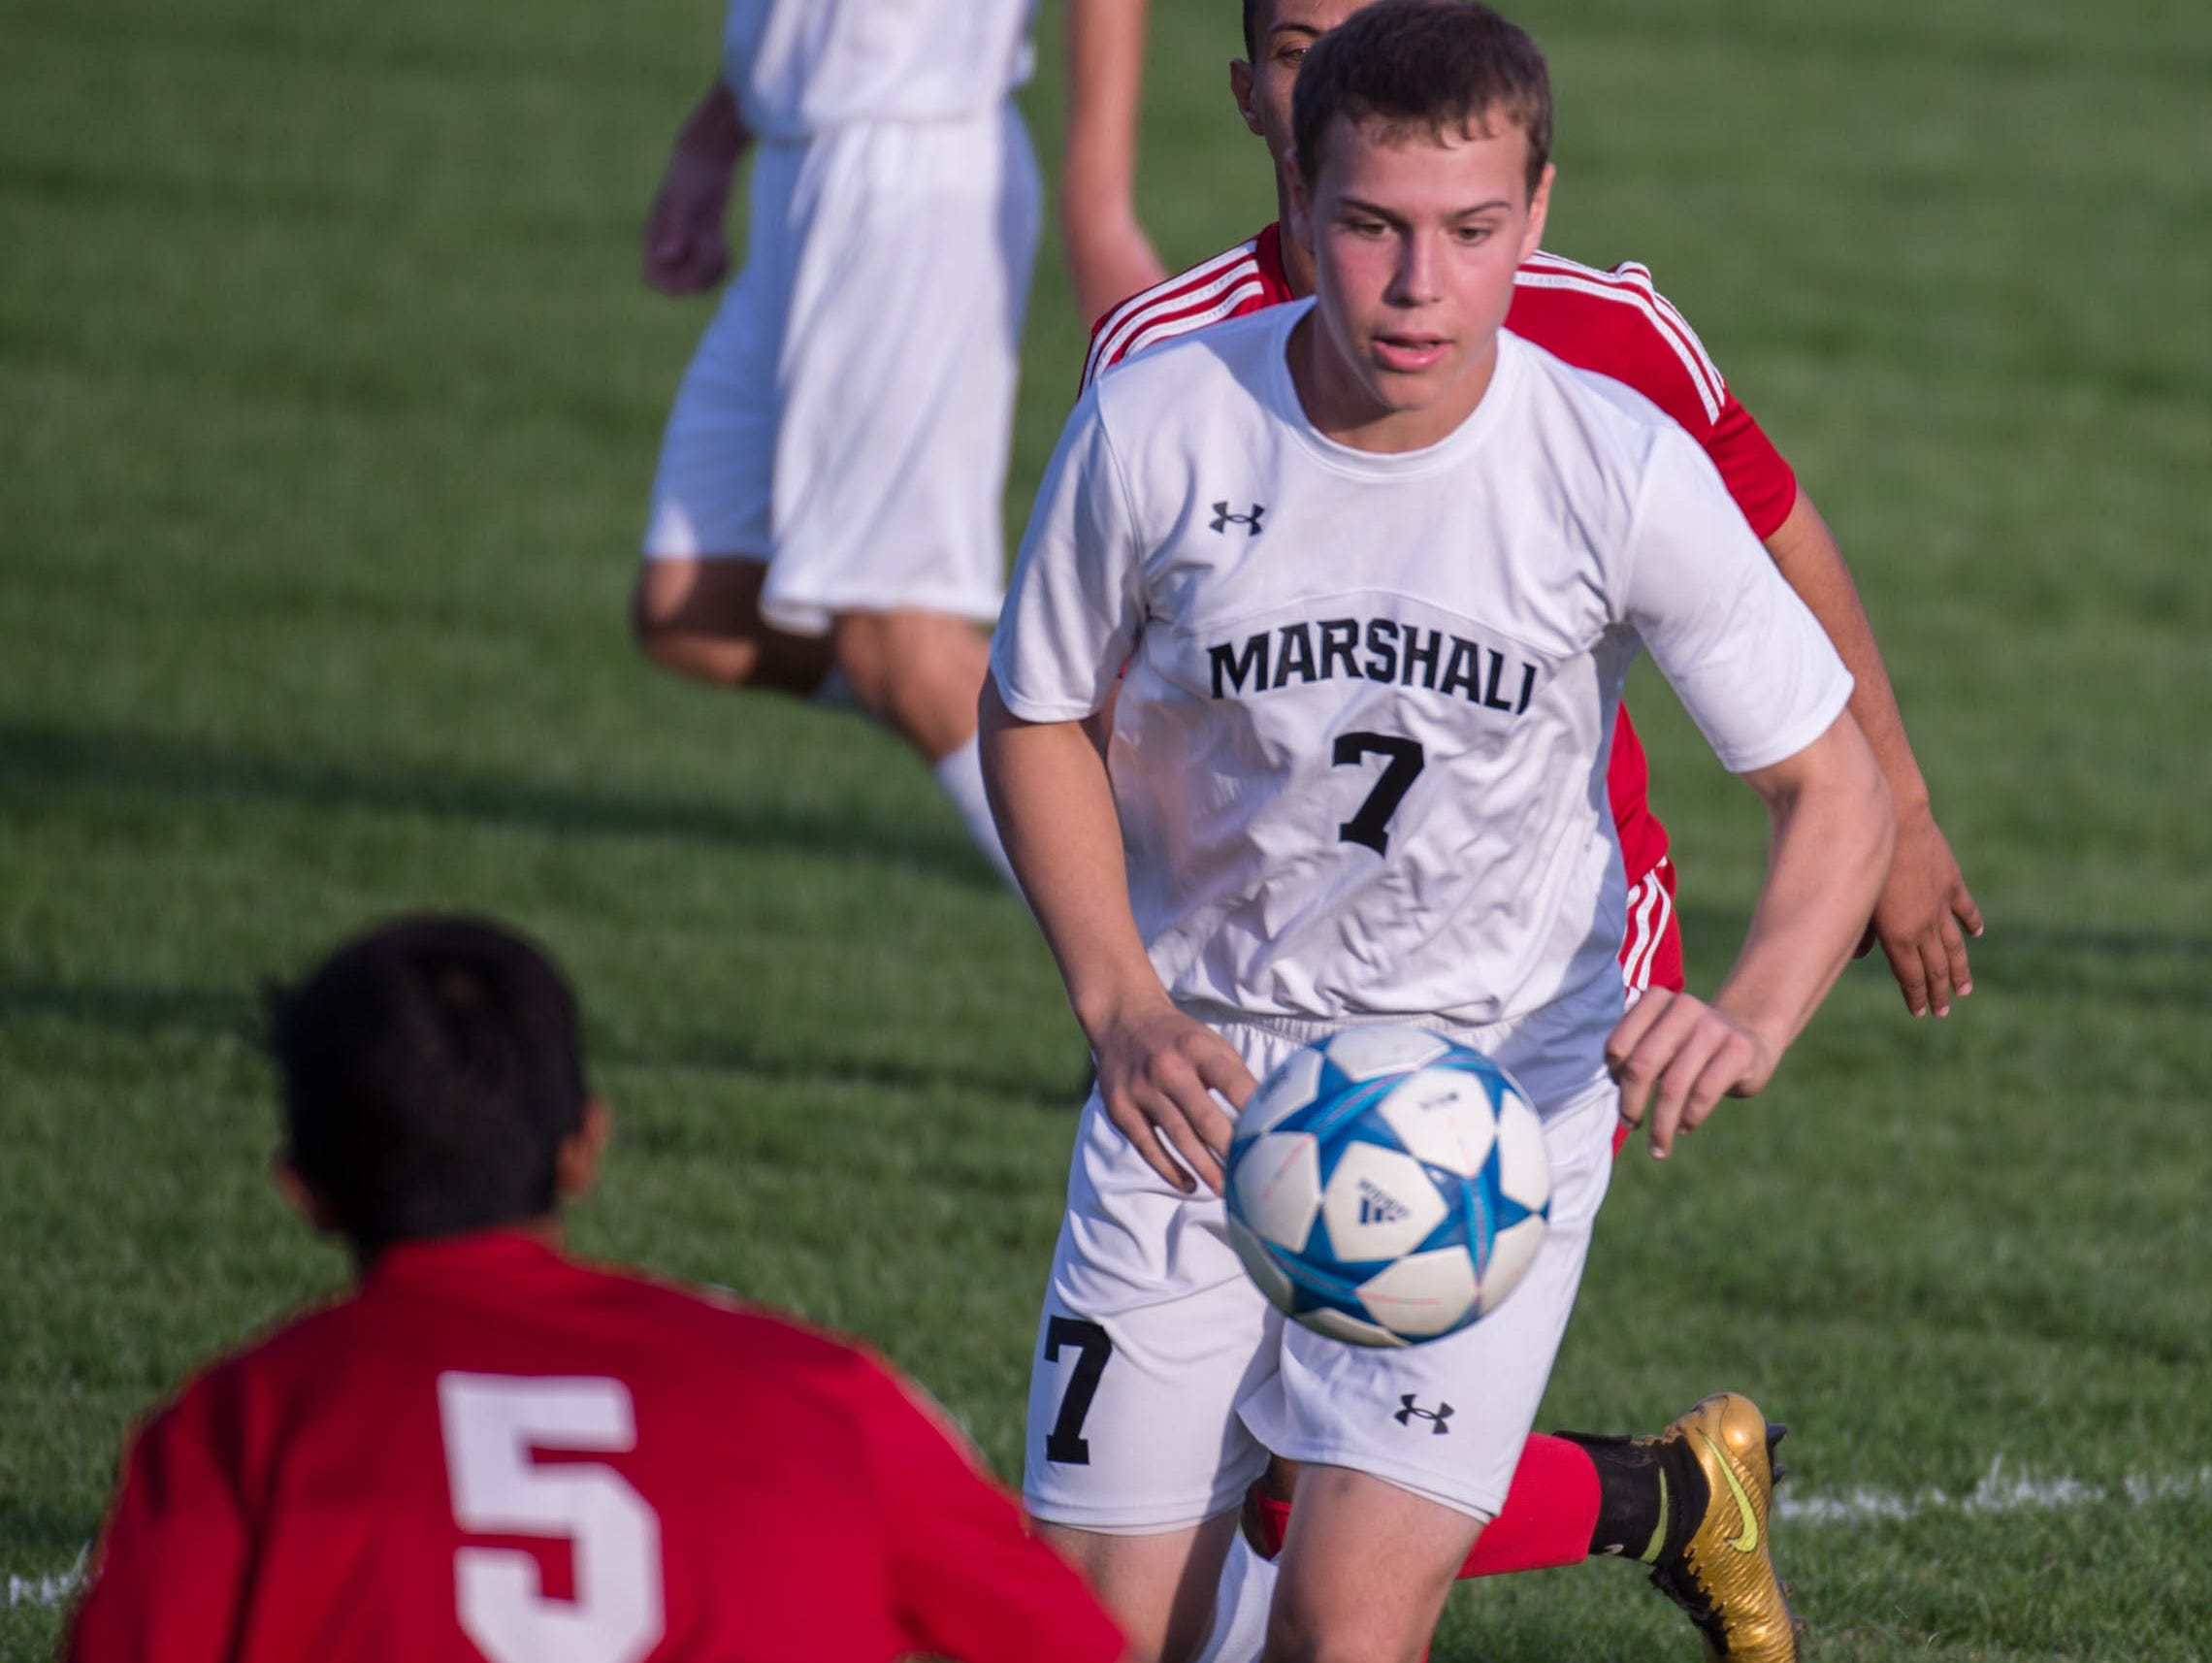 Marshall senior Andrew Shippell currently leads the Redhawks in scoring while in the final stages of his chemotherapy.